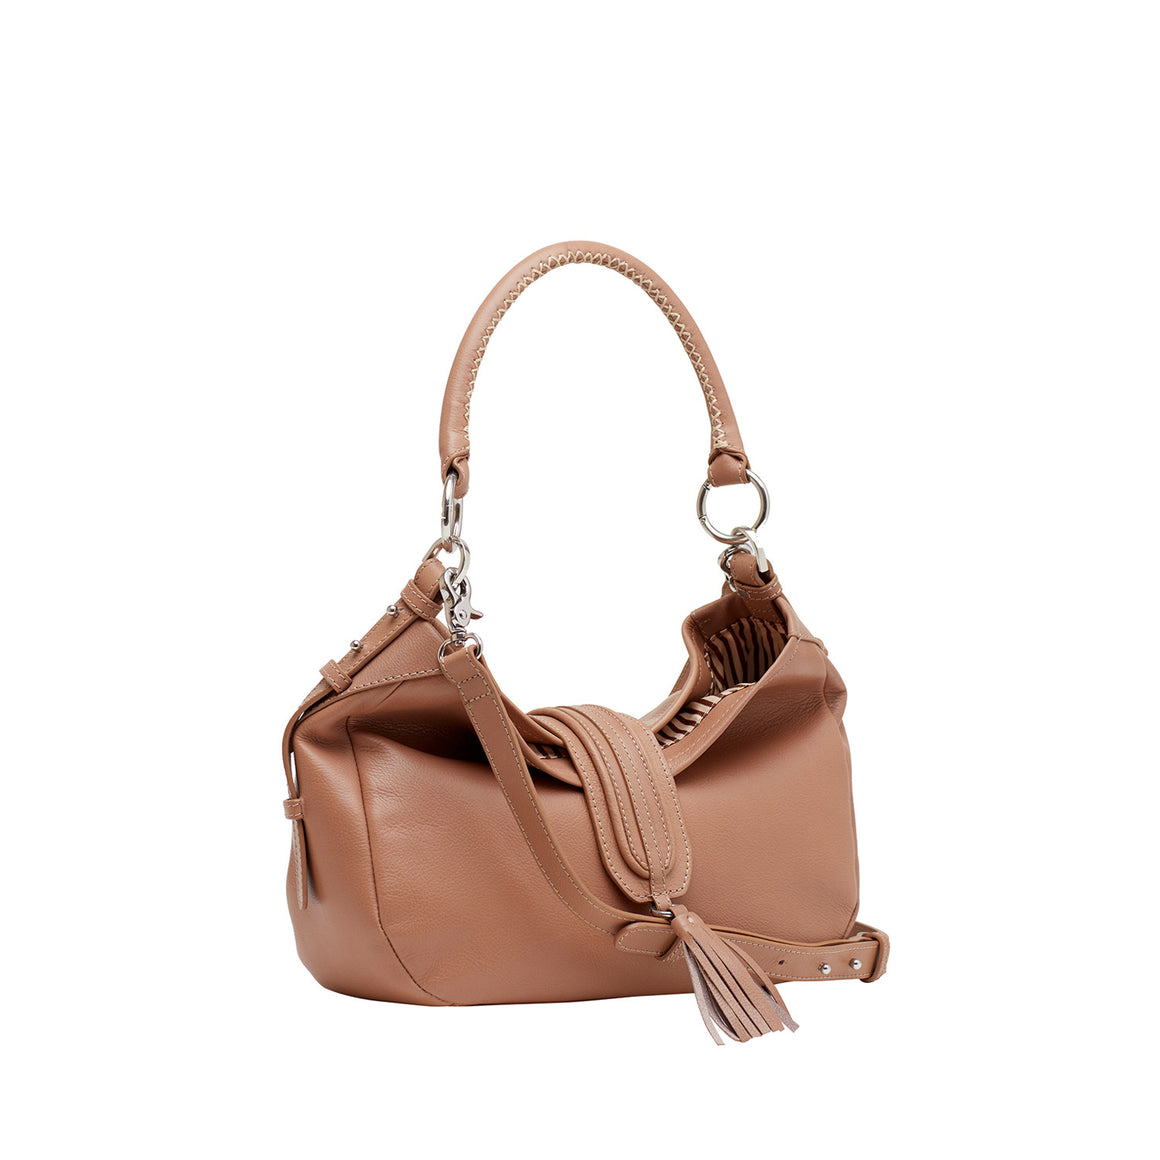 SB 0004 - TOHL BRIGITTE WOMEN'S SHOULDER BAG - NUDE